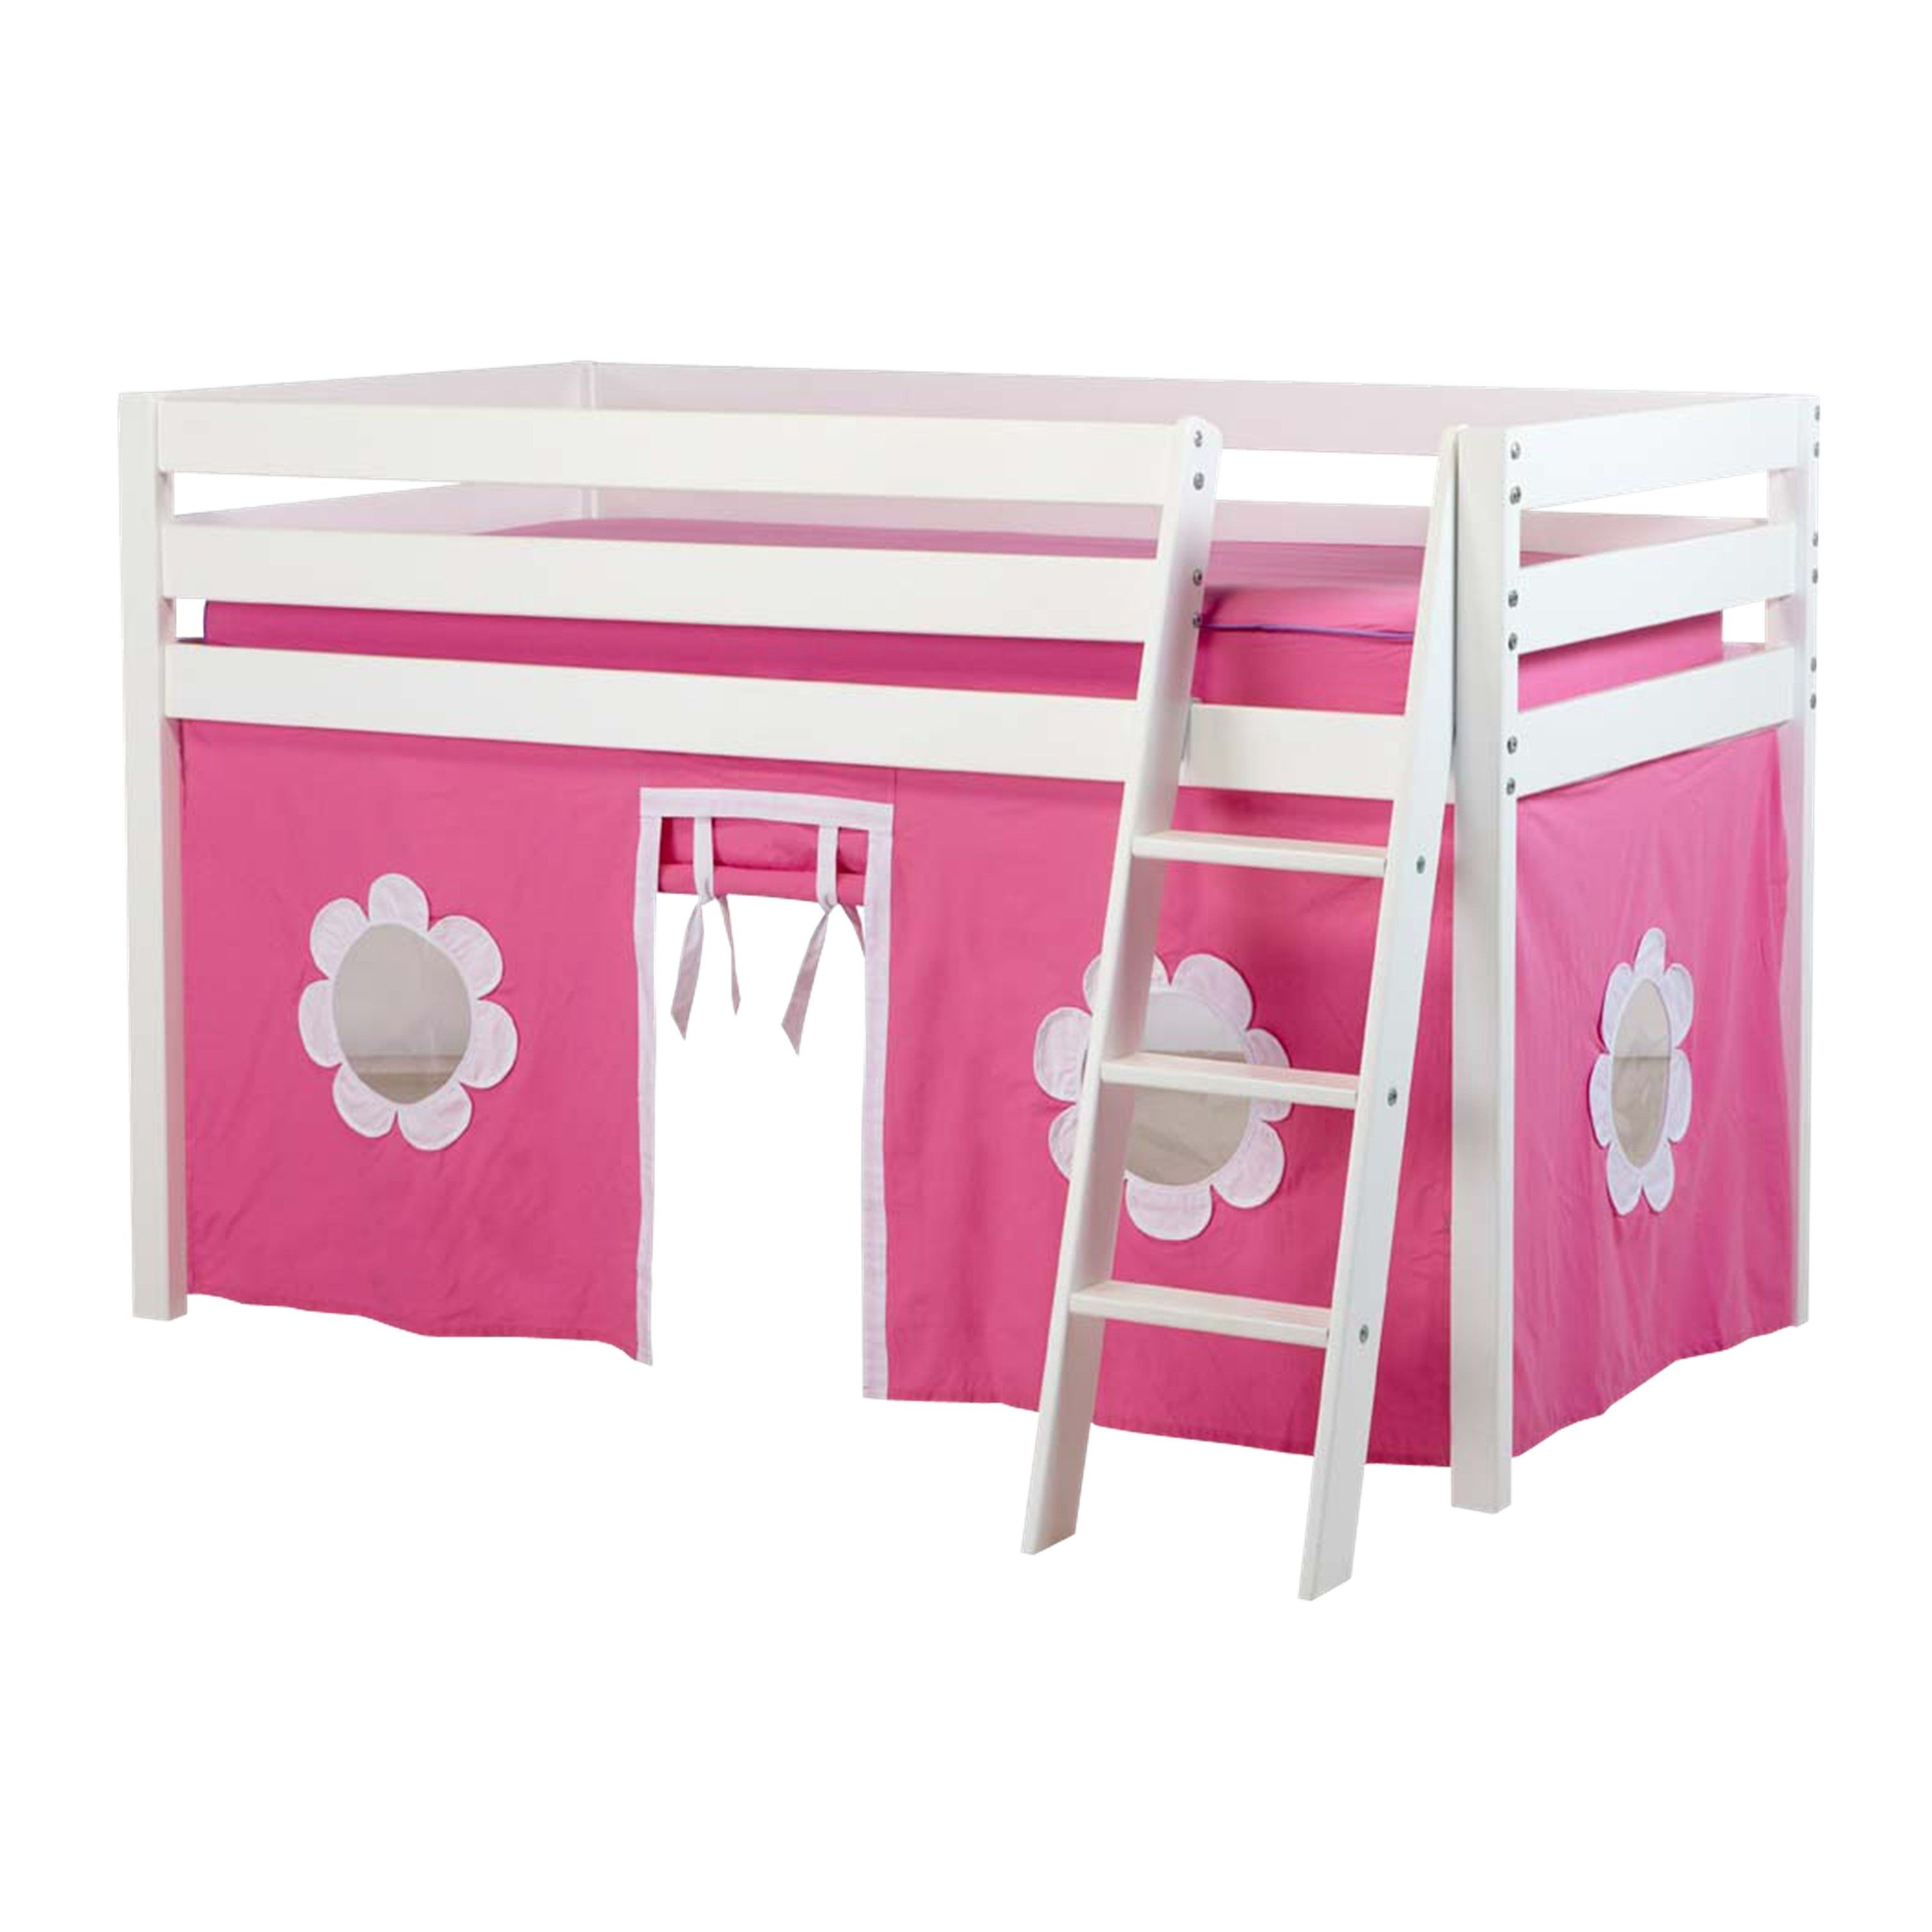 Low loft bed with desk and storage  JACKPOT Low Loft Bed with Angle Ladder and Underbed Curtain Cherry